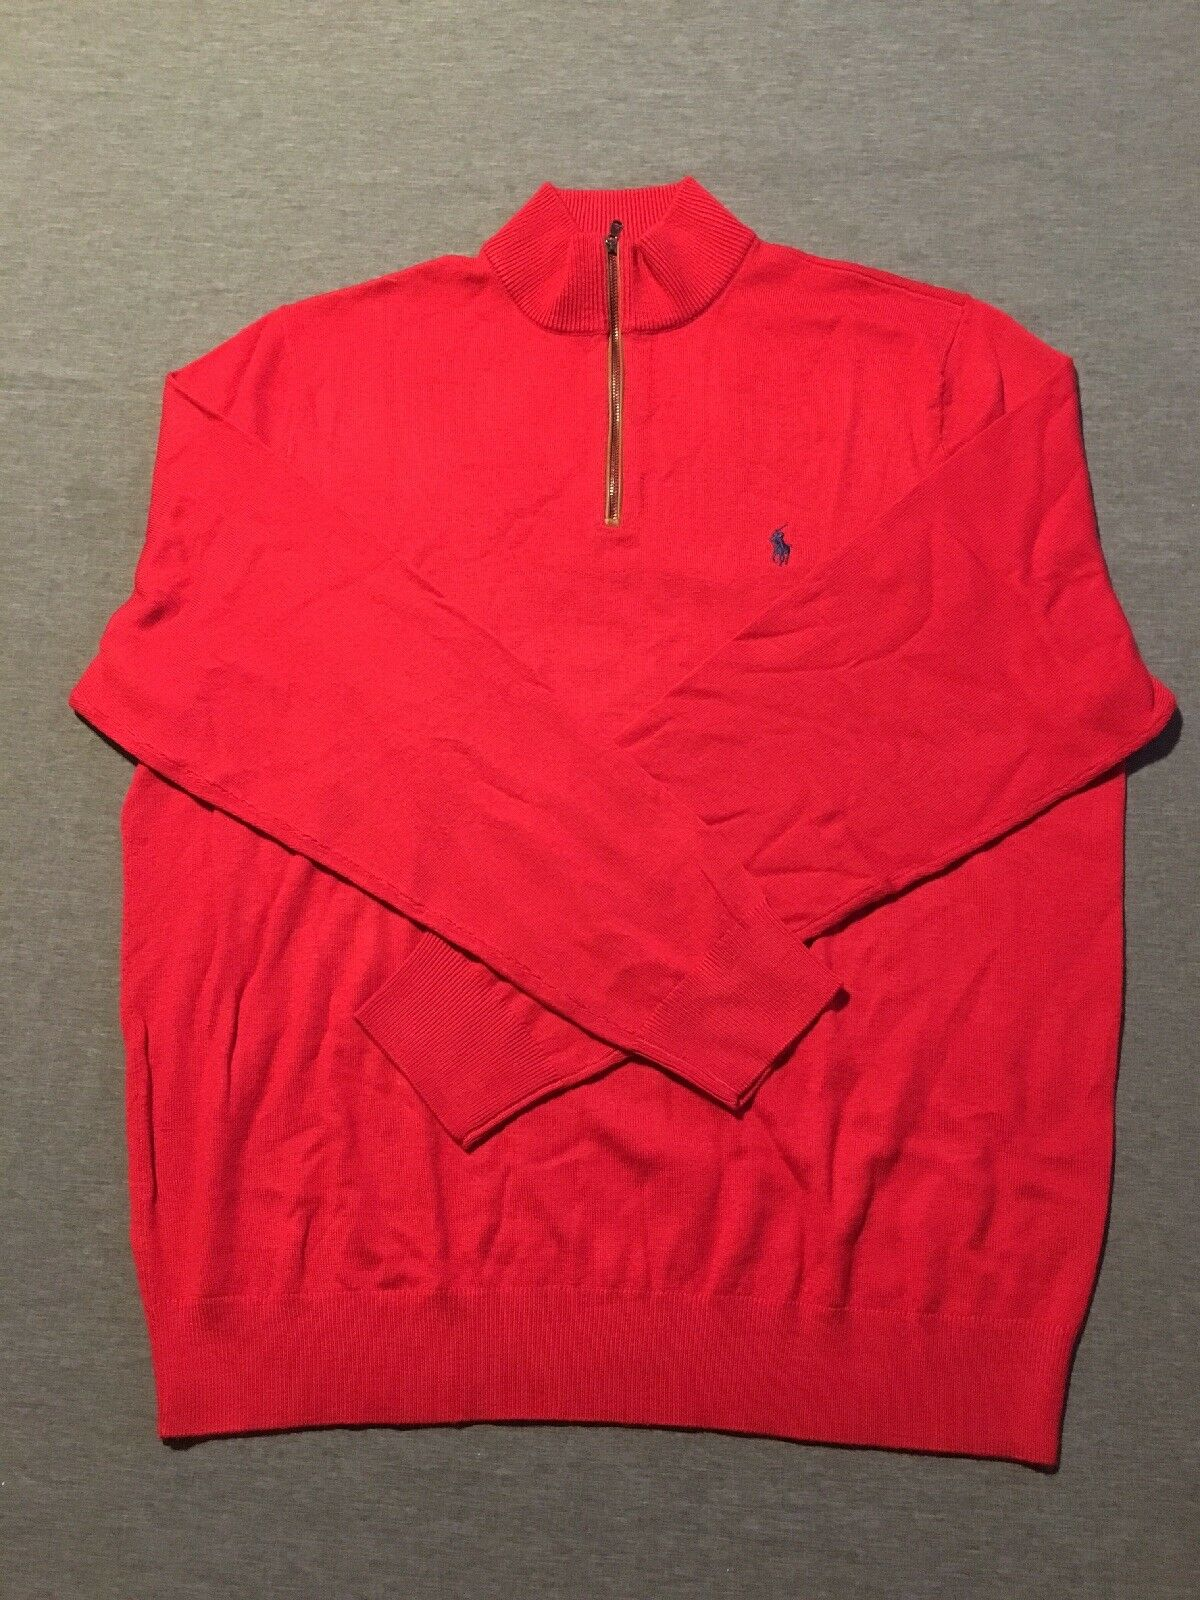 New Without Tags Large Red 1 2 Zip Sweater By Polo By Ralph Lauren